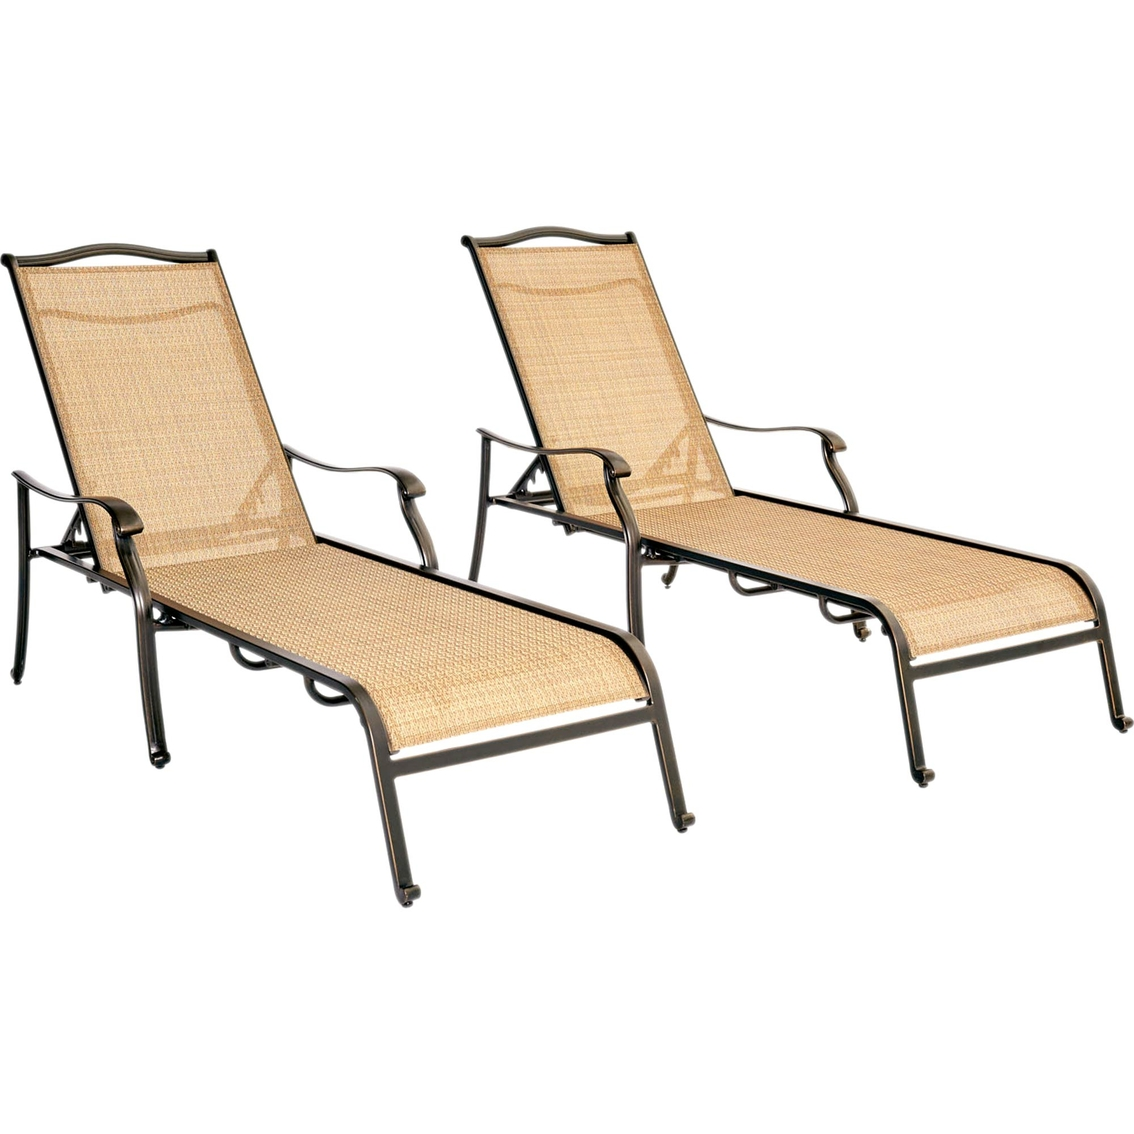 Chaise Pc Hanover Outdoor Monaco Chaise Lounge Chairs 2 Pc Set Chaises